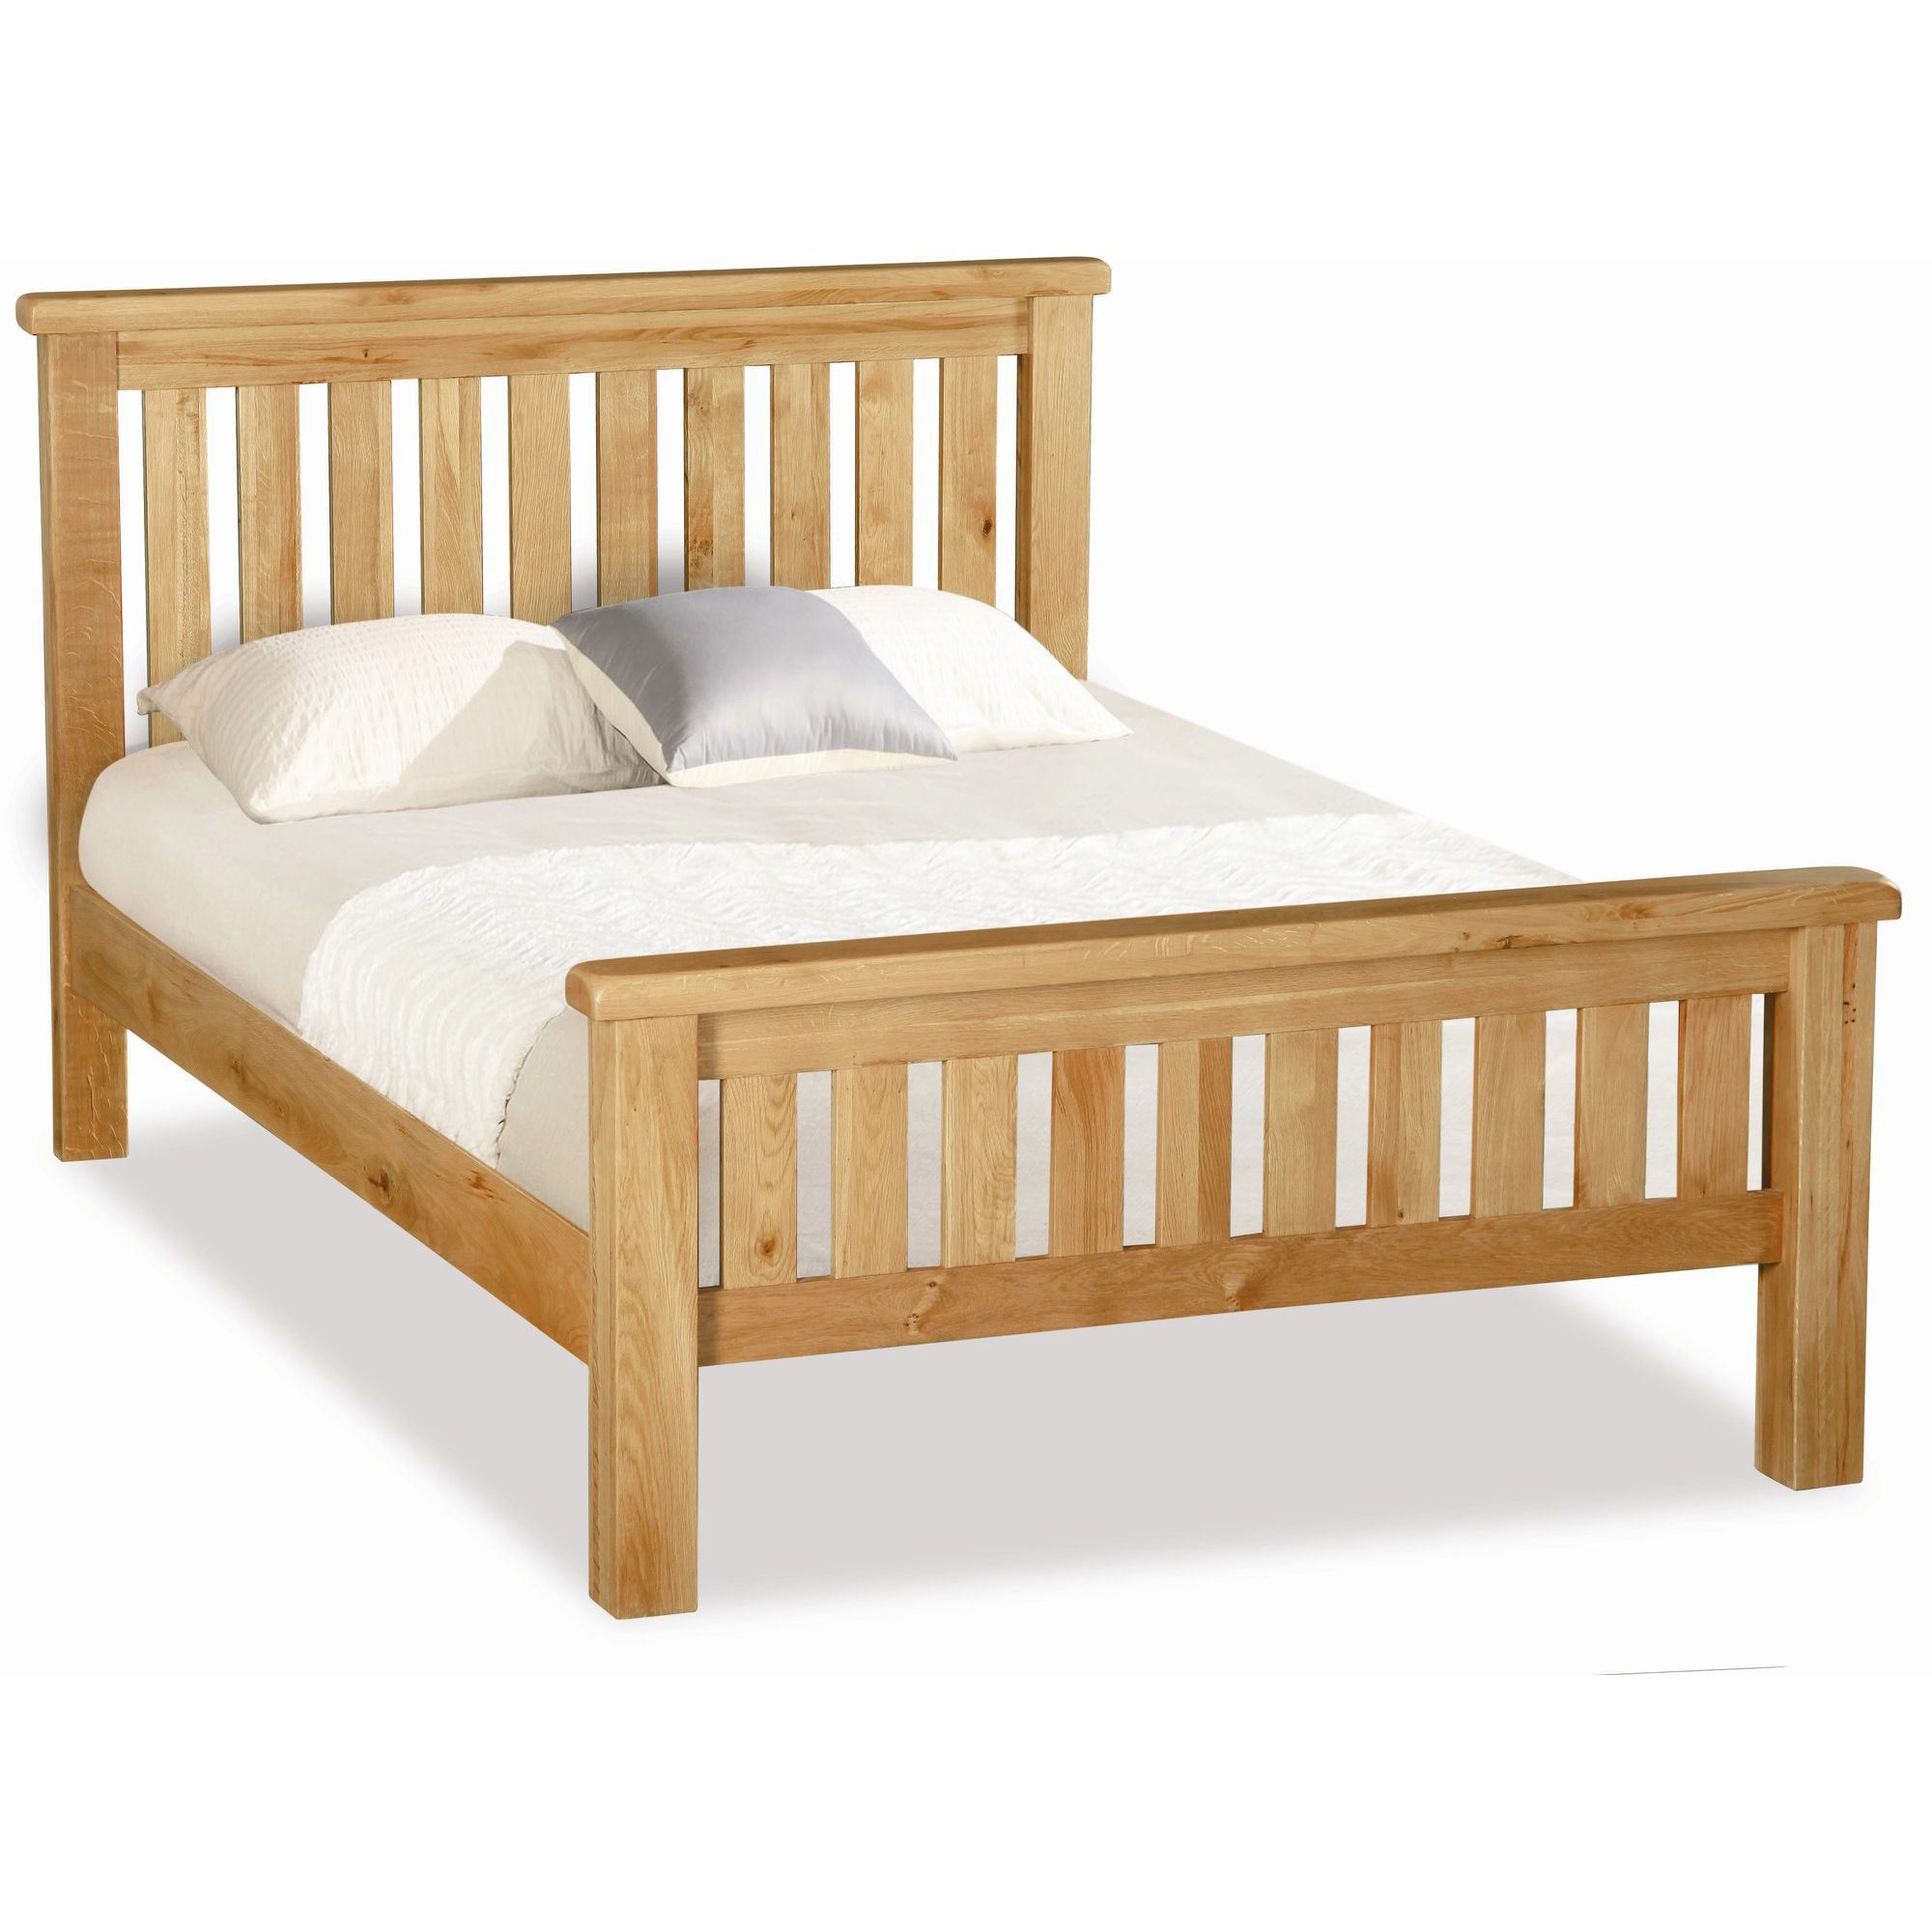 Alterton Furniture Pemberley Slatted Bed - King at Tesco Direct